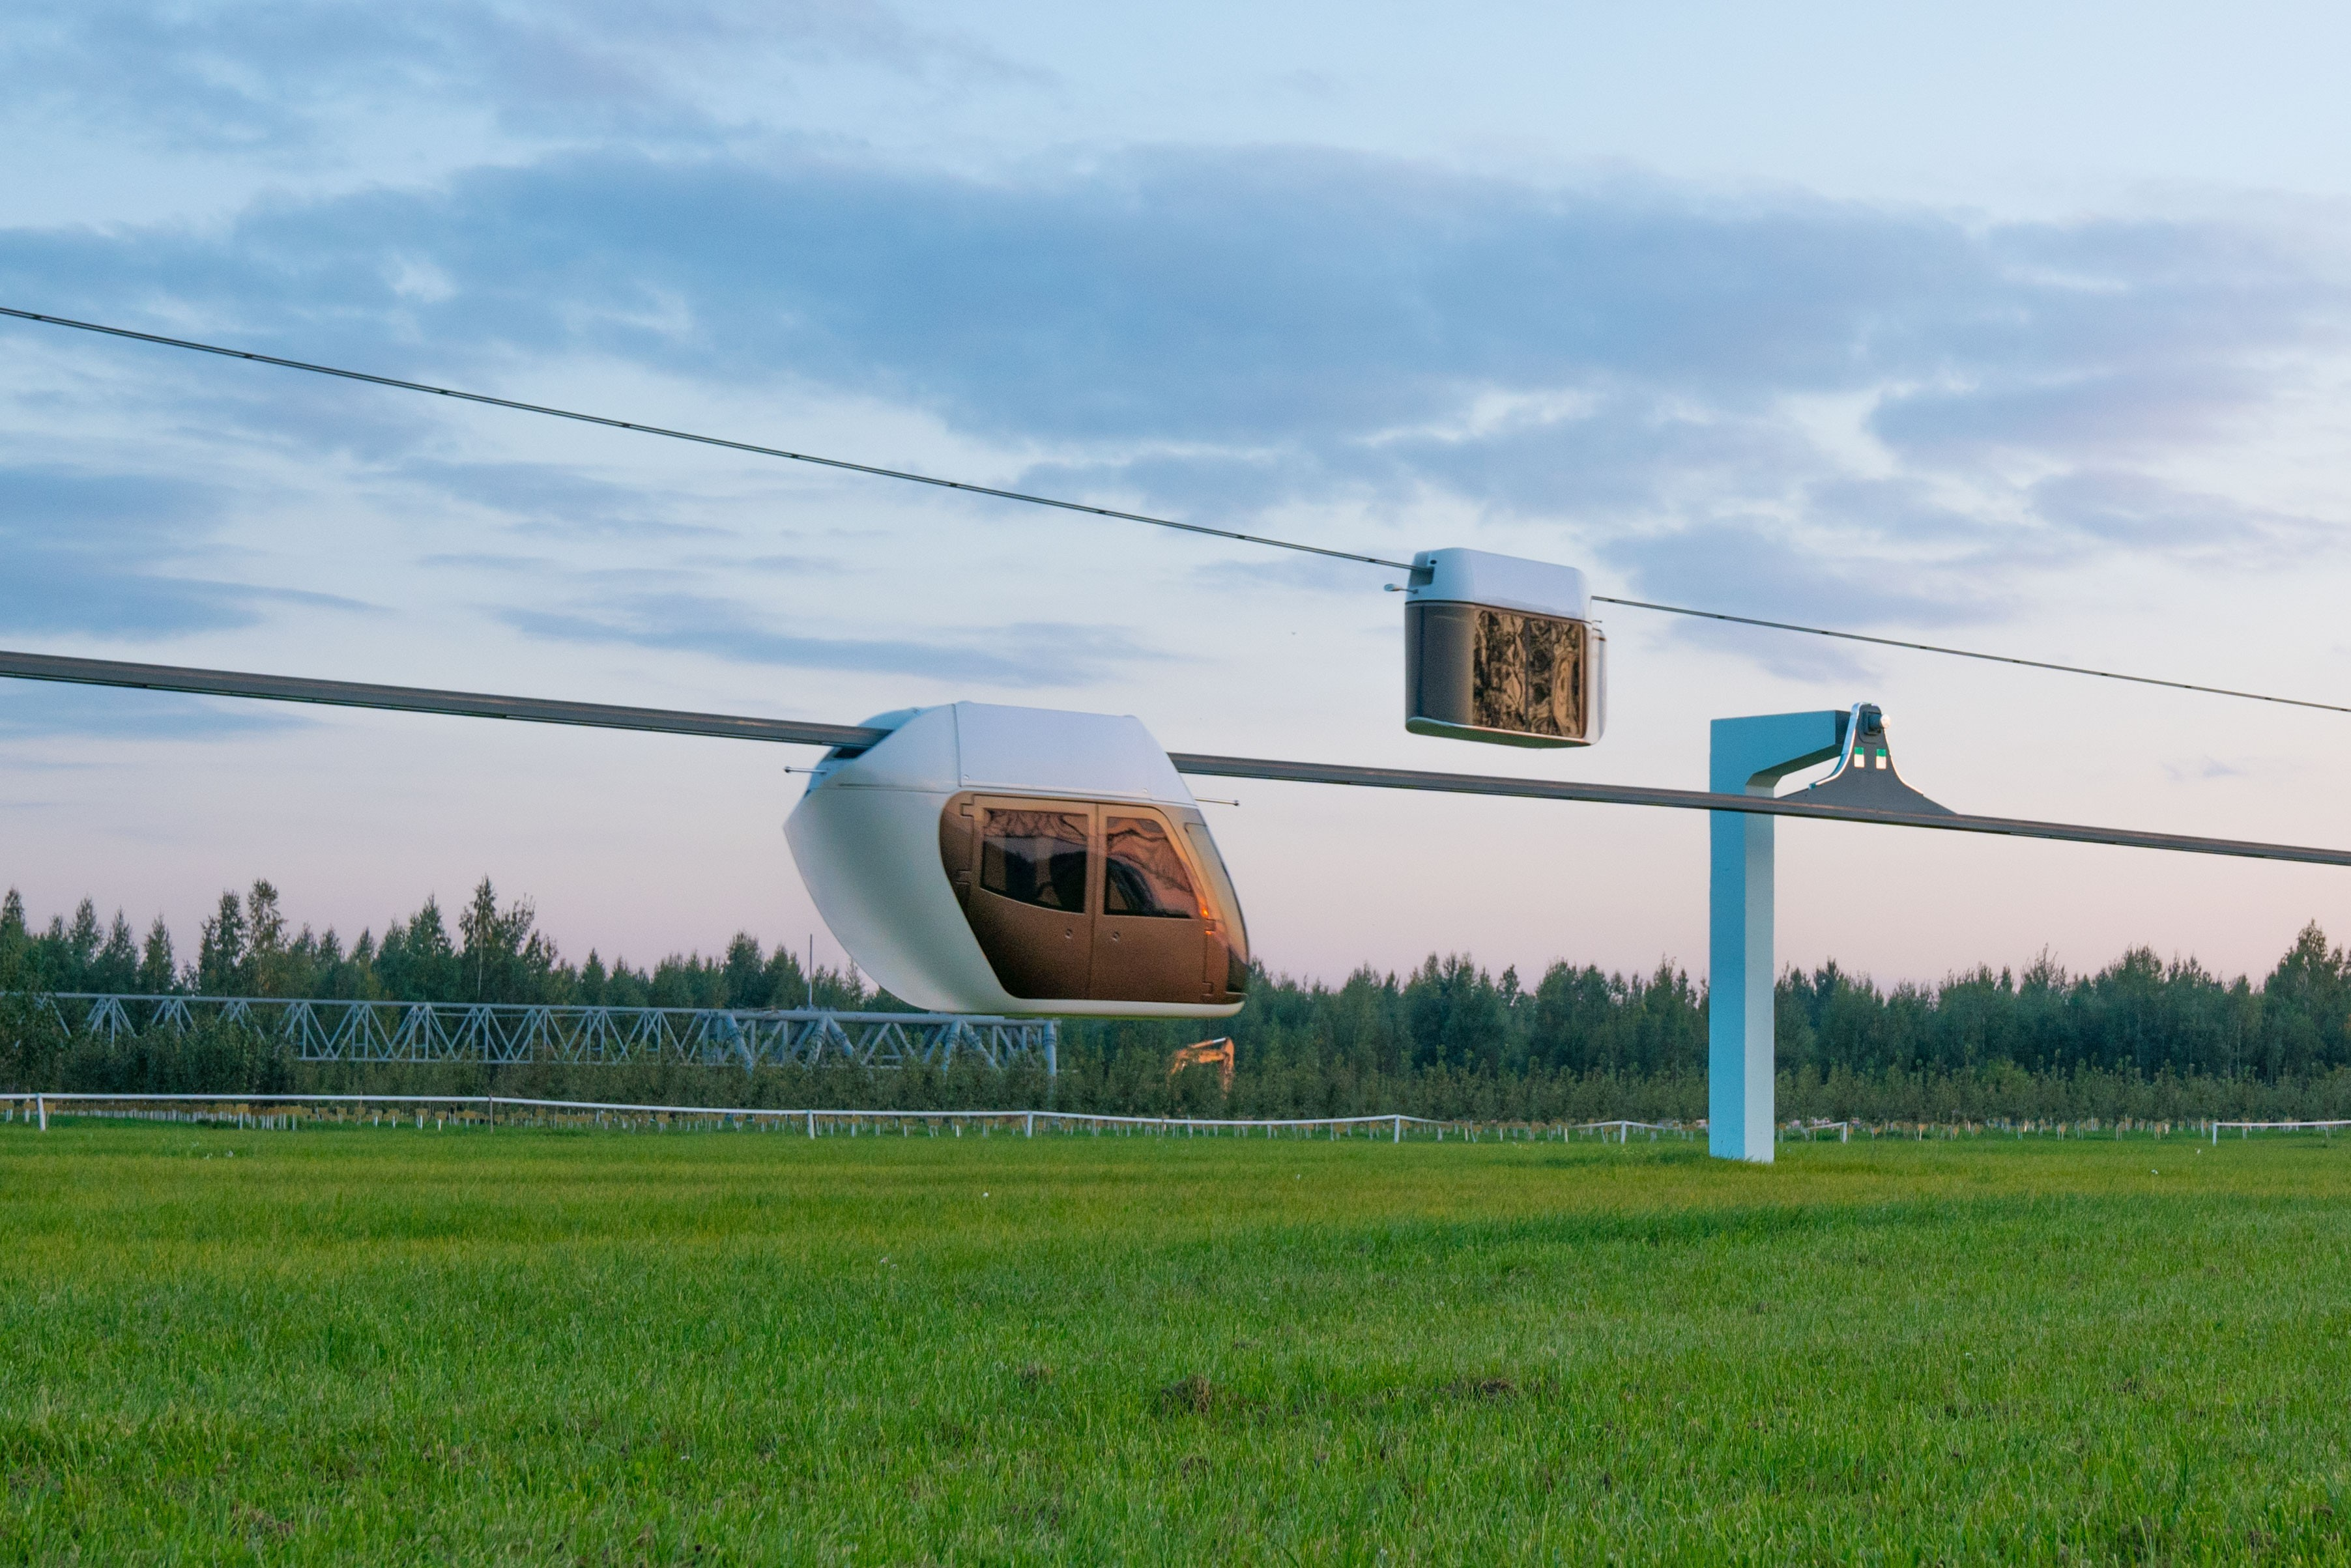 SkyWay unibus and unibike at EcoTechnPark in Belarus